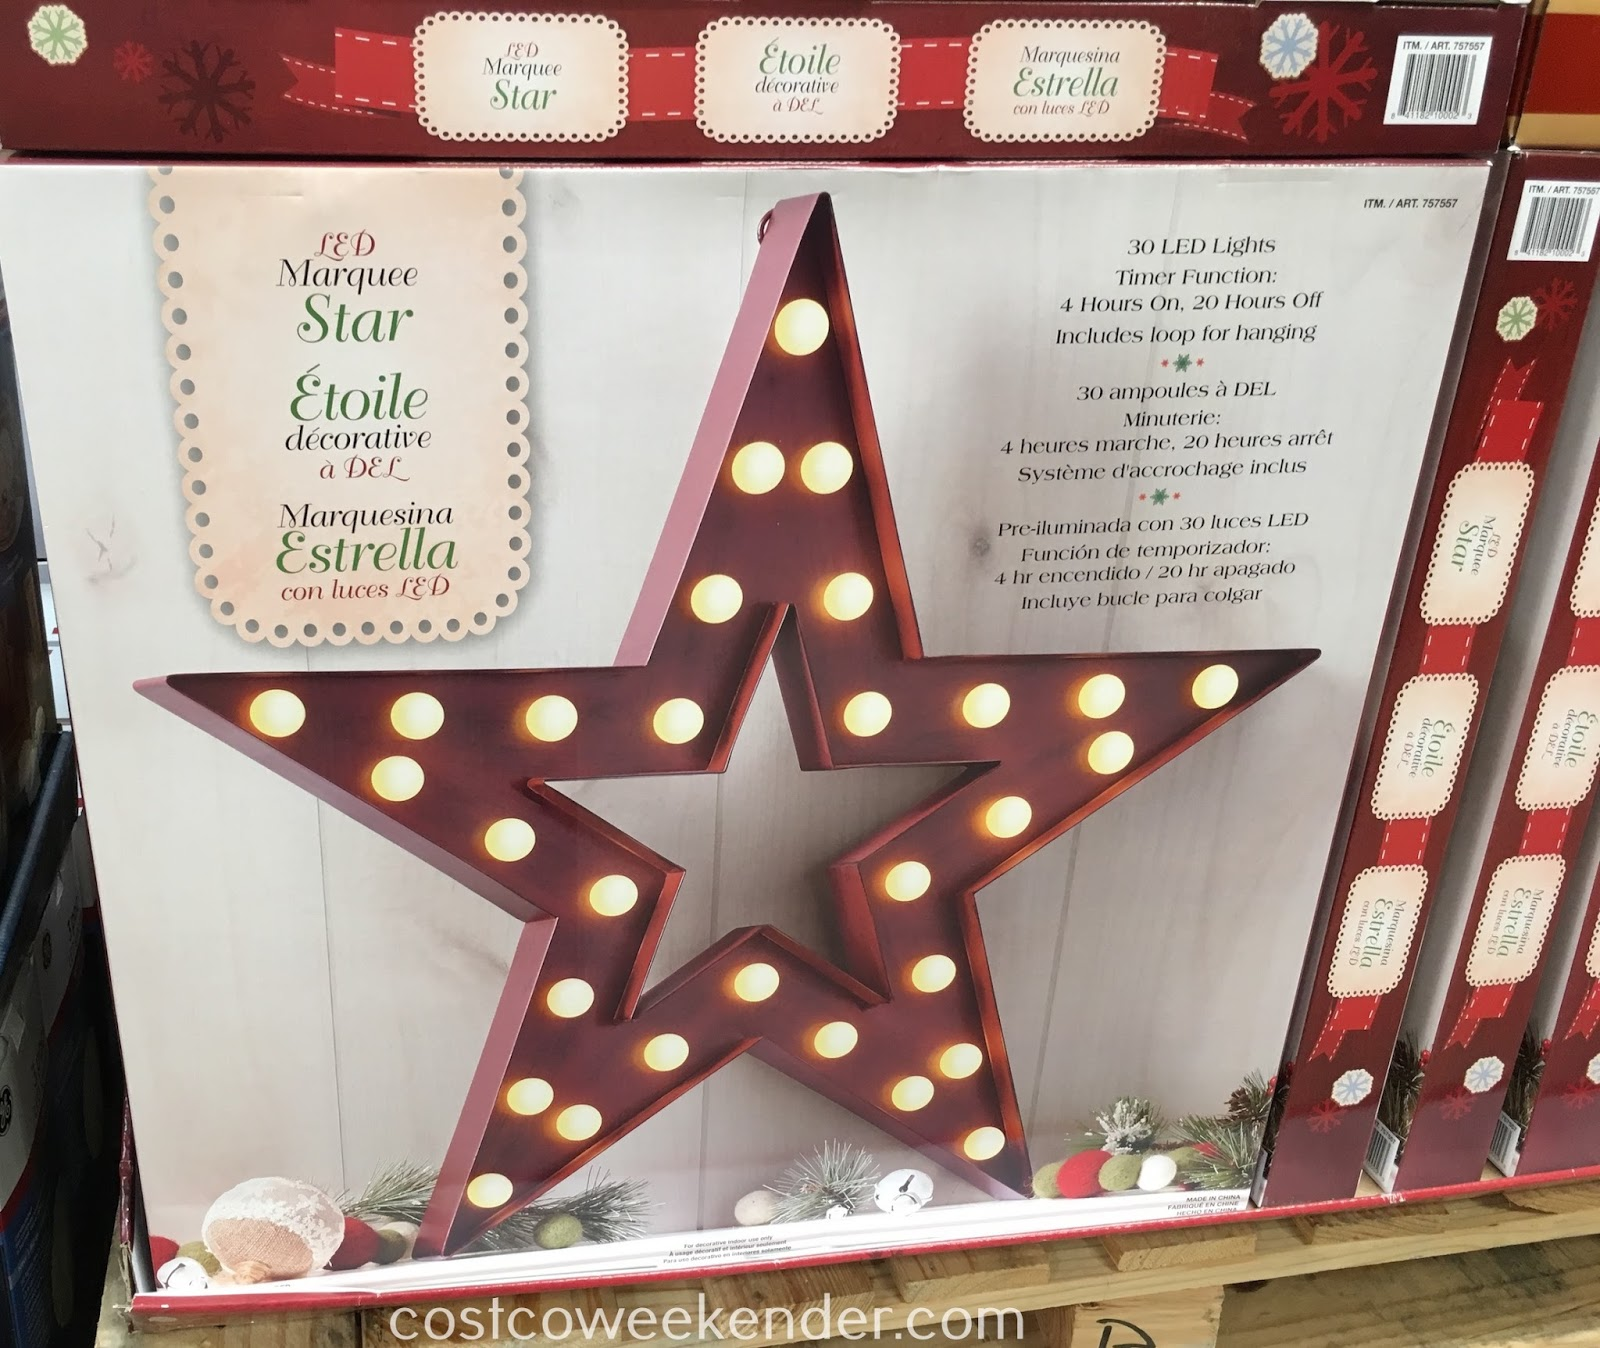 Make your home that much more stylish and bright with the LED Marquee Star